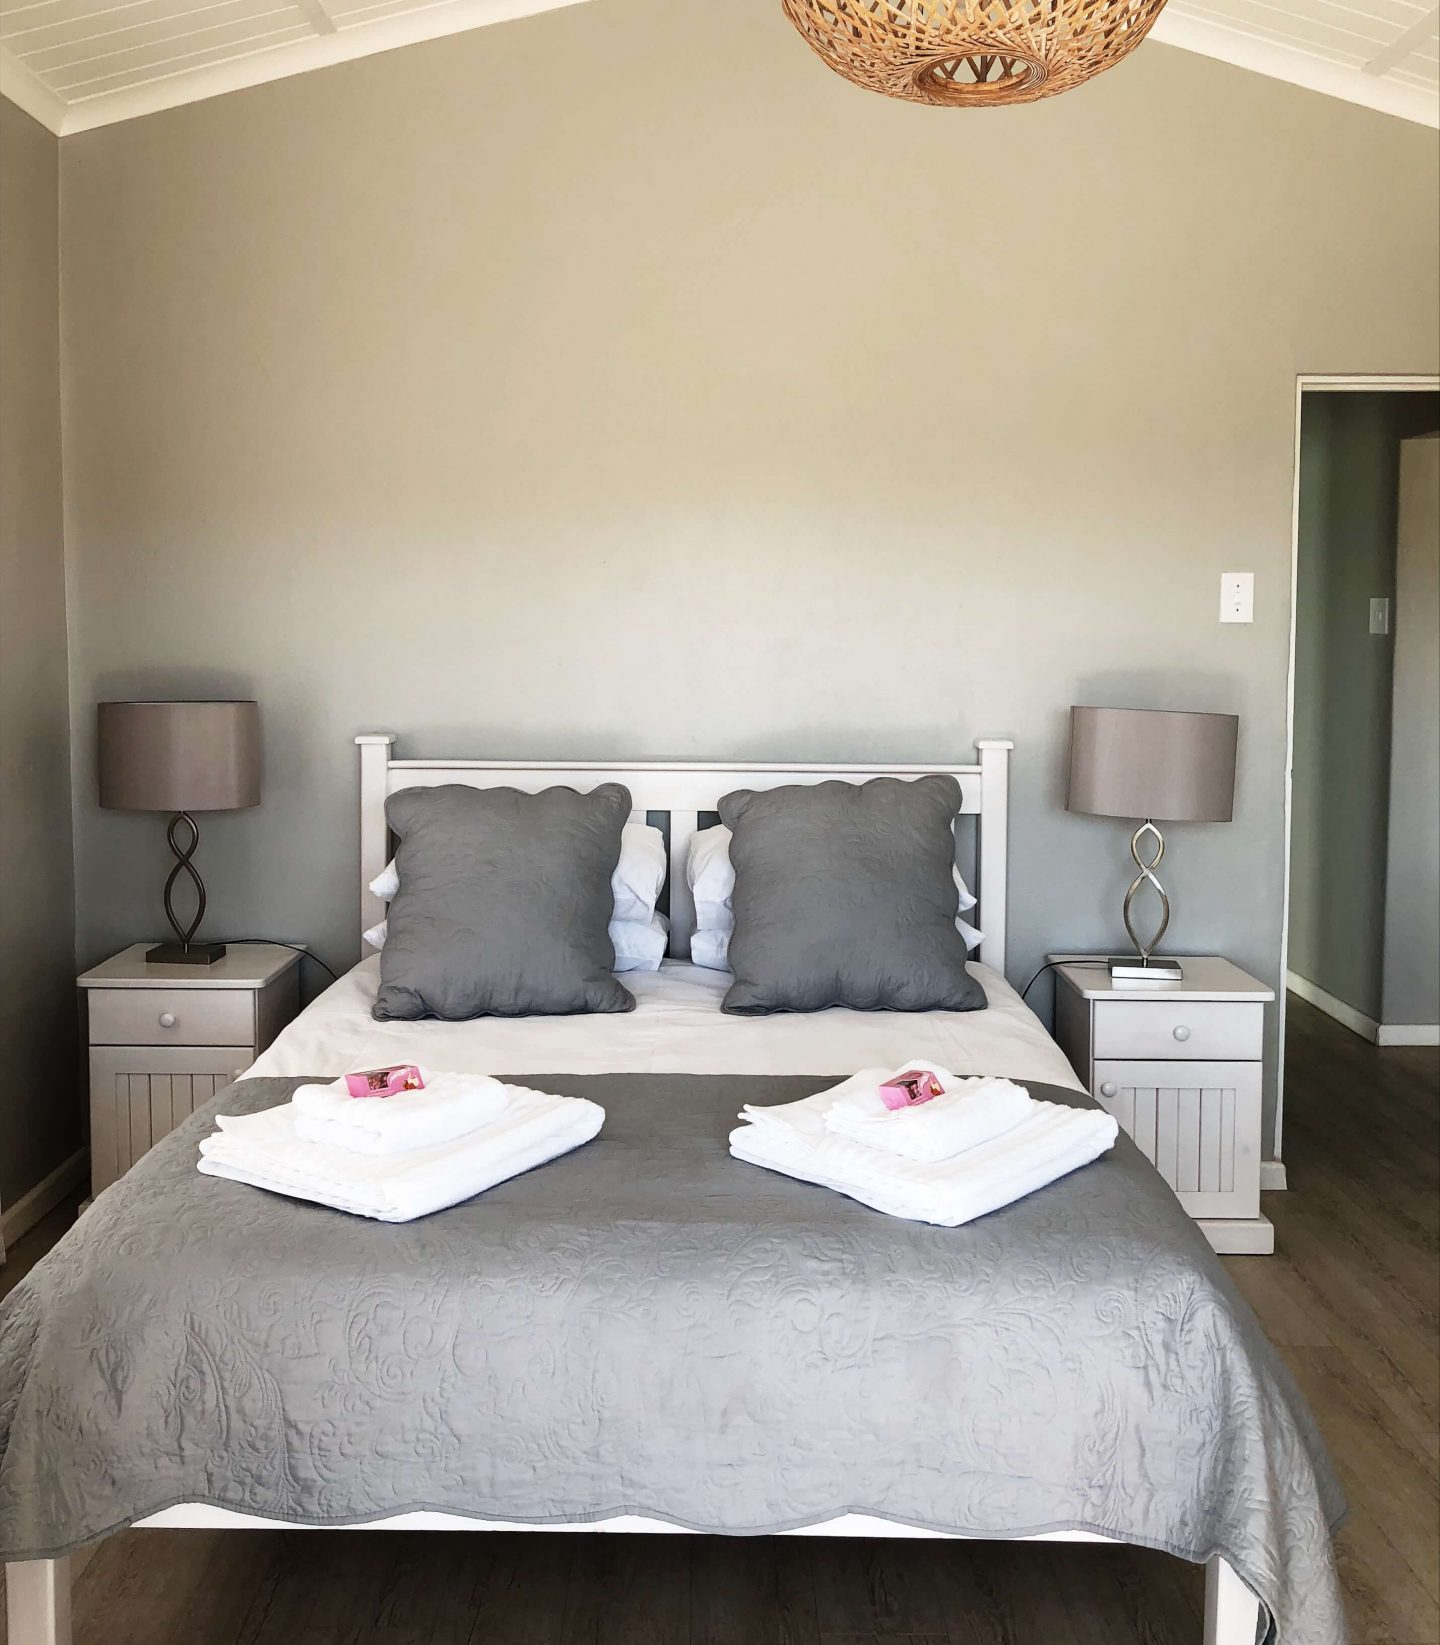 Vineyard House accomodation worcester cape town airbnb